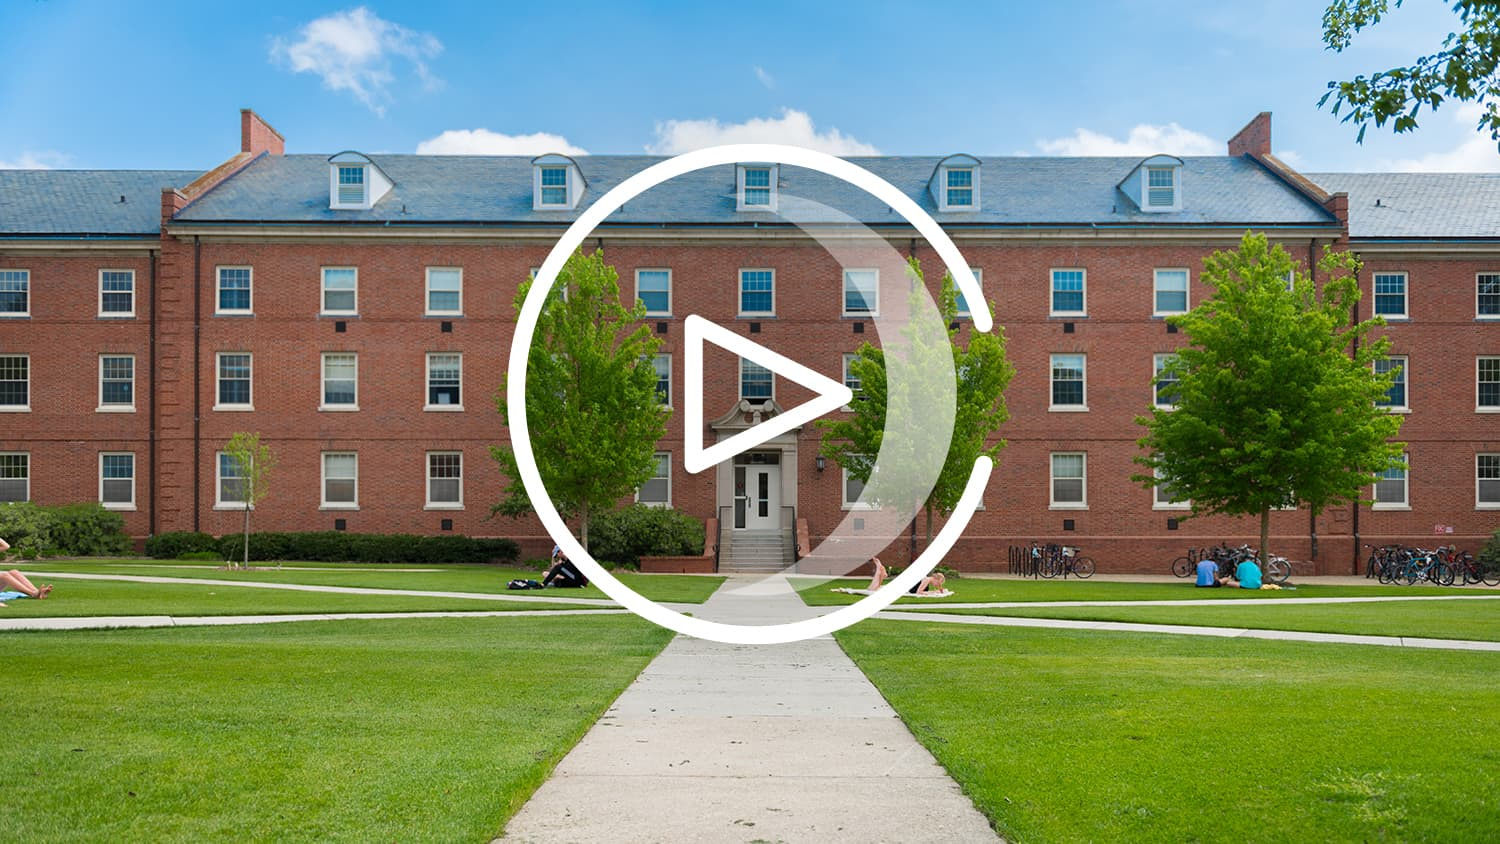 Residence hall on campus